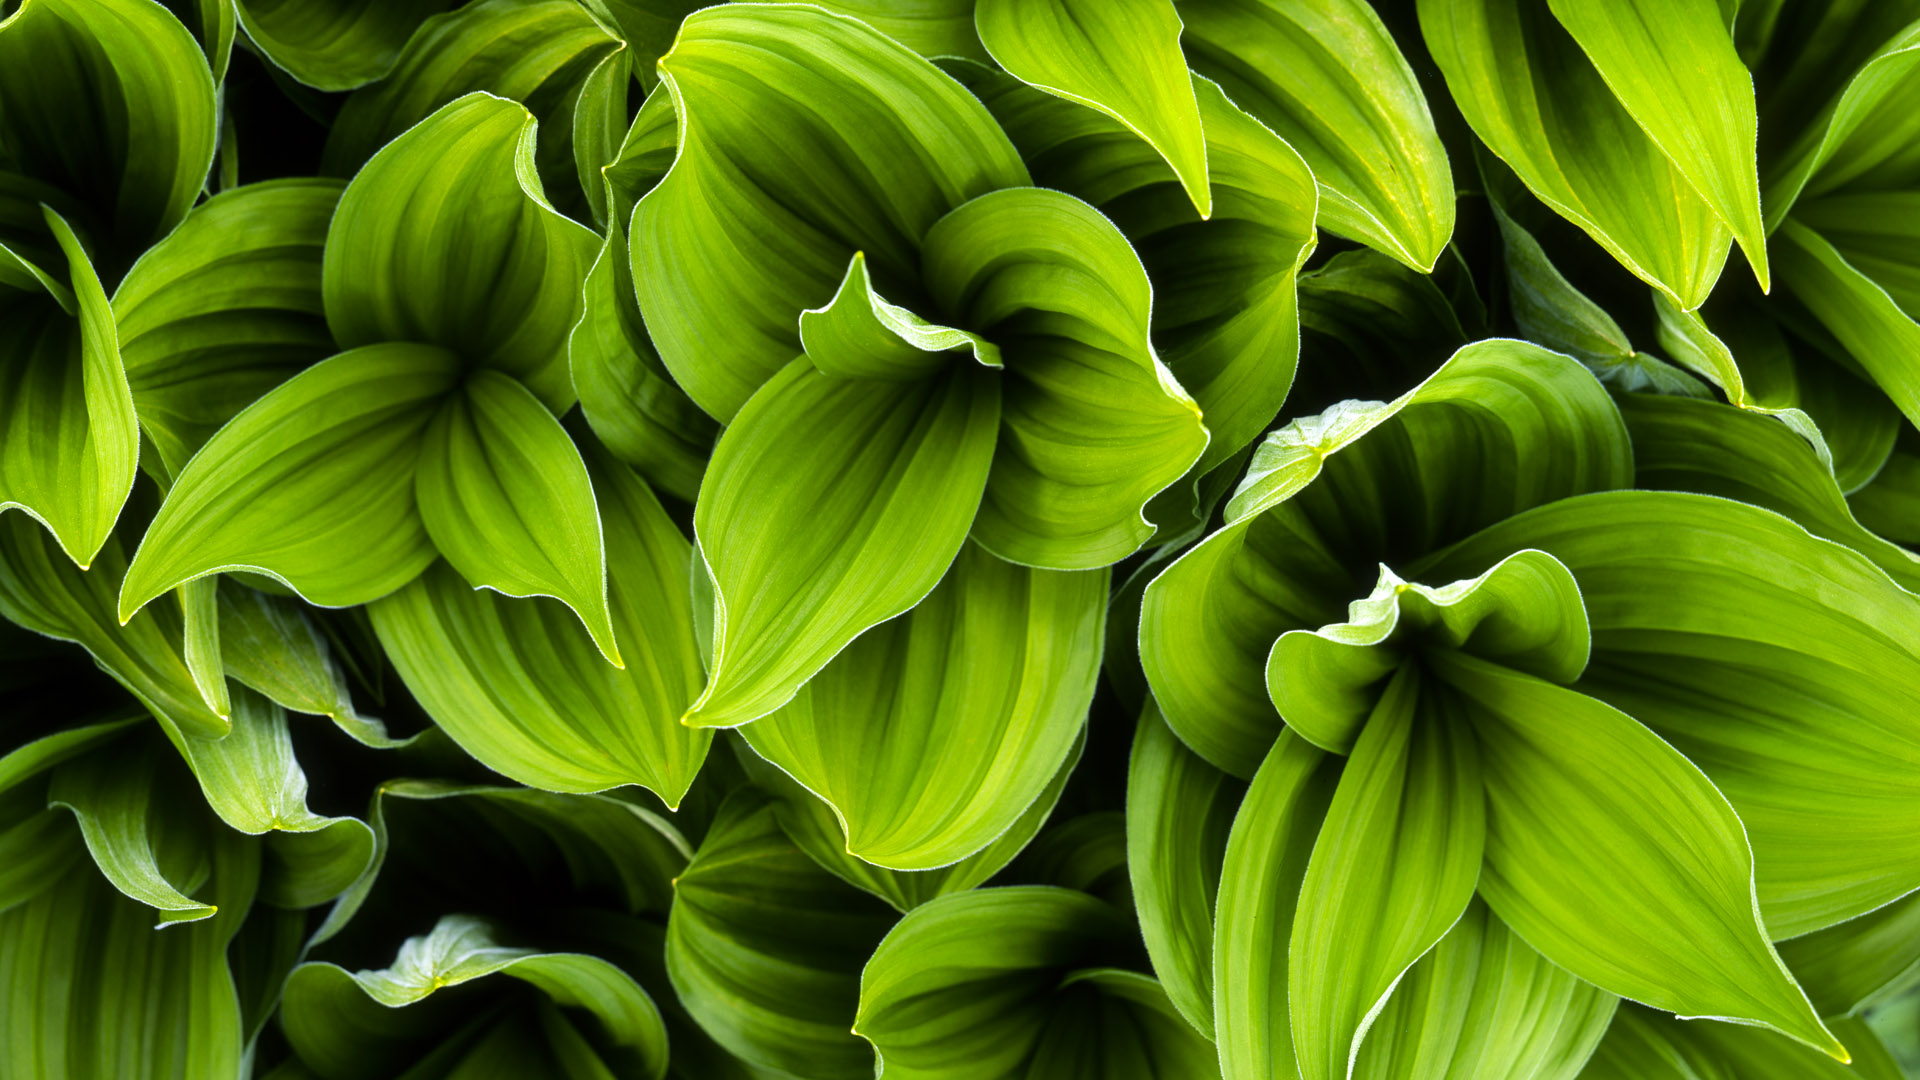 Awesome plants hd wallpapers for Green plants for garden